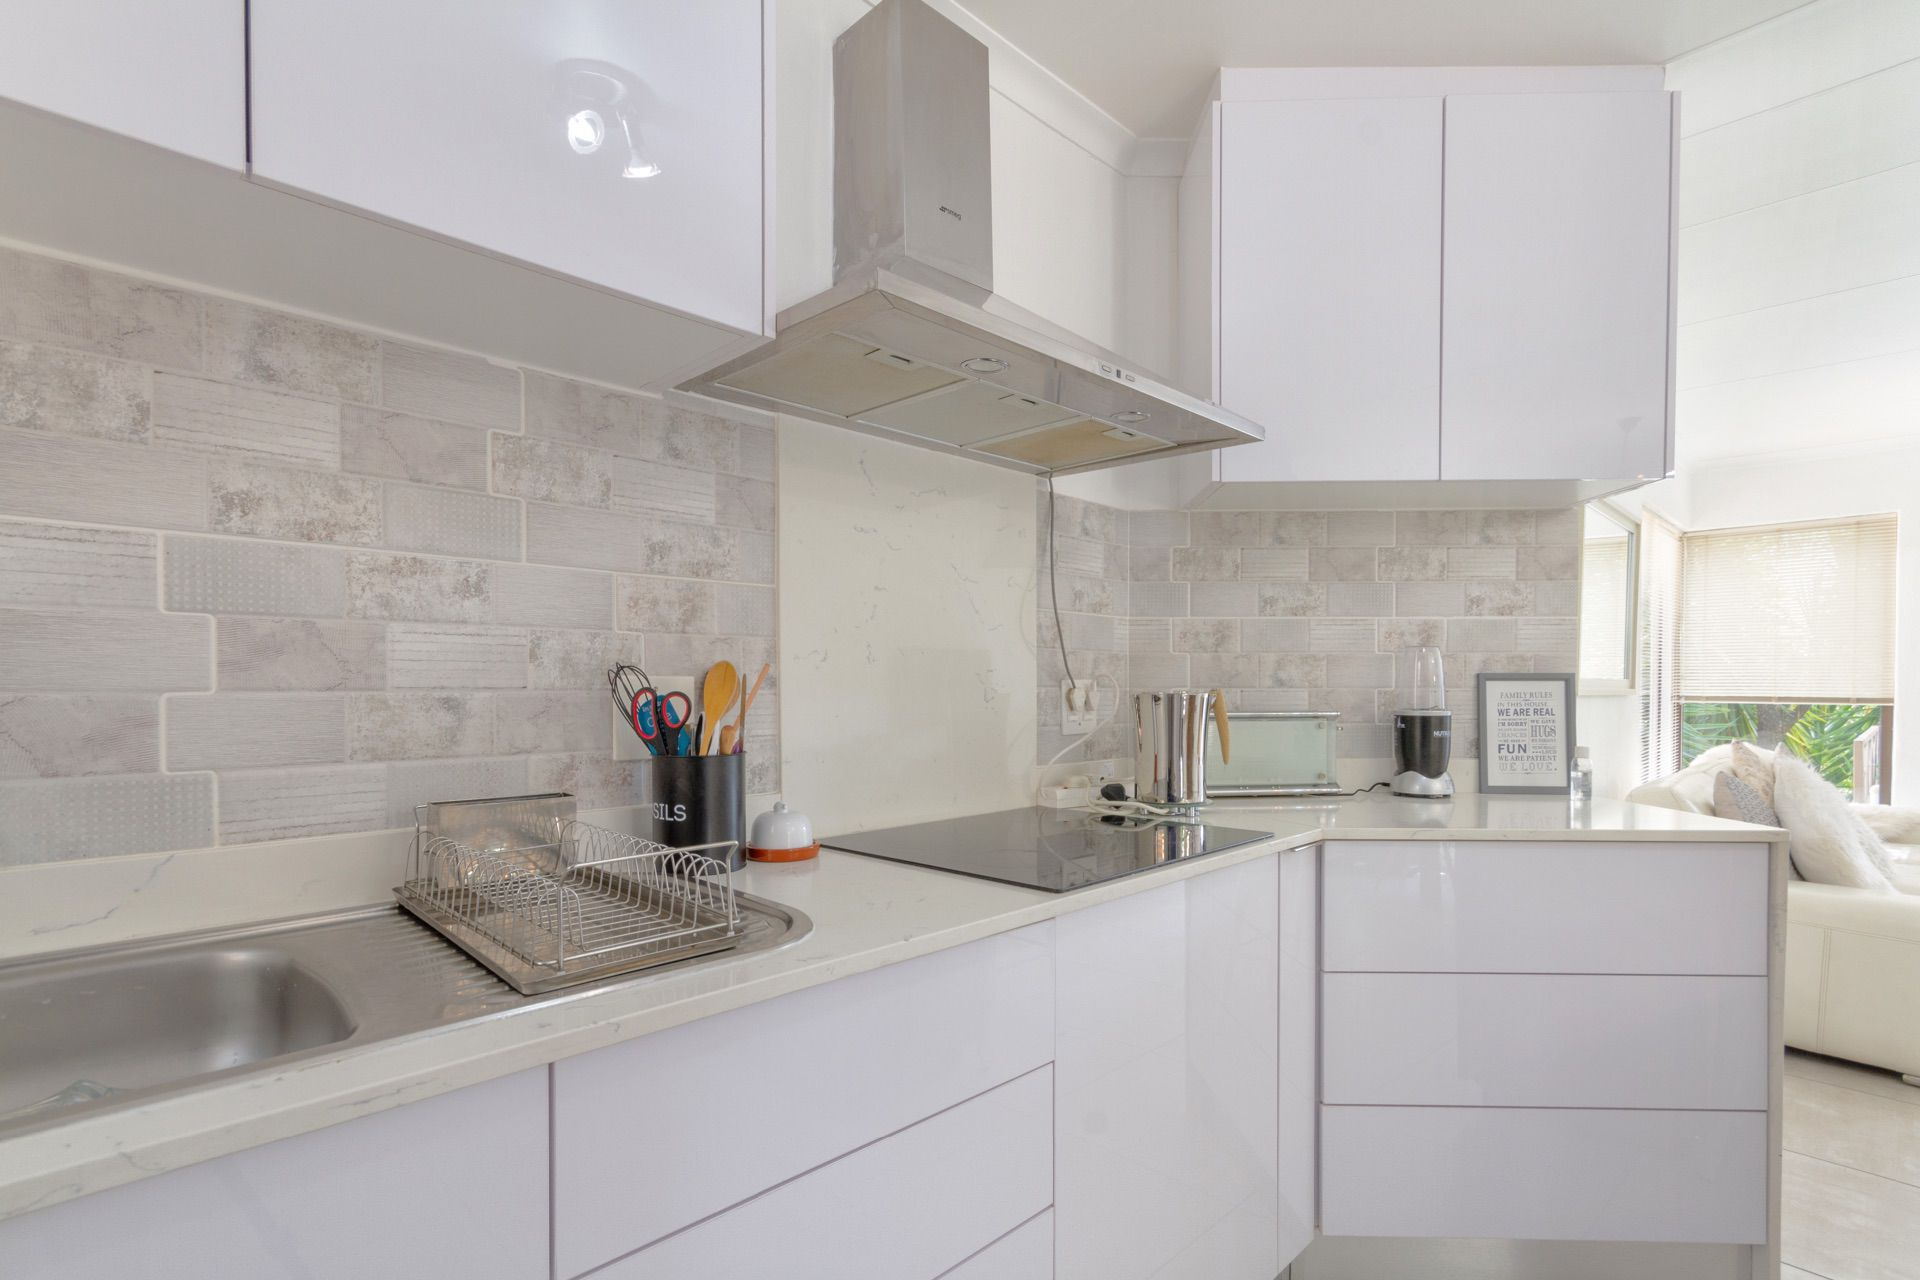 Modern kitchen and fittings